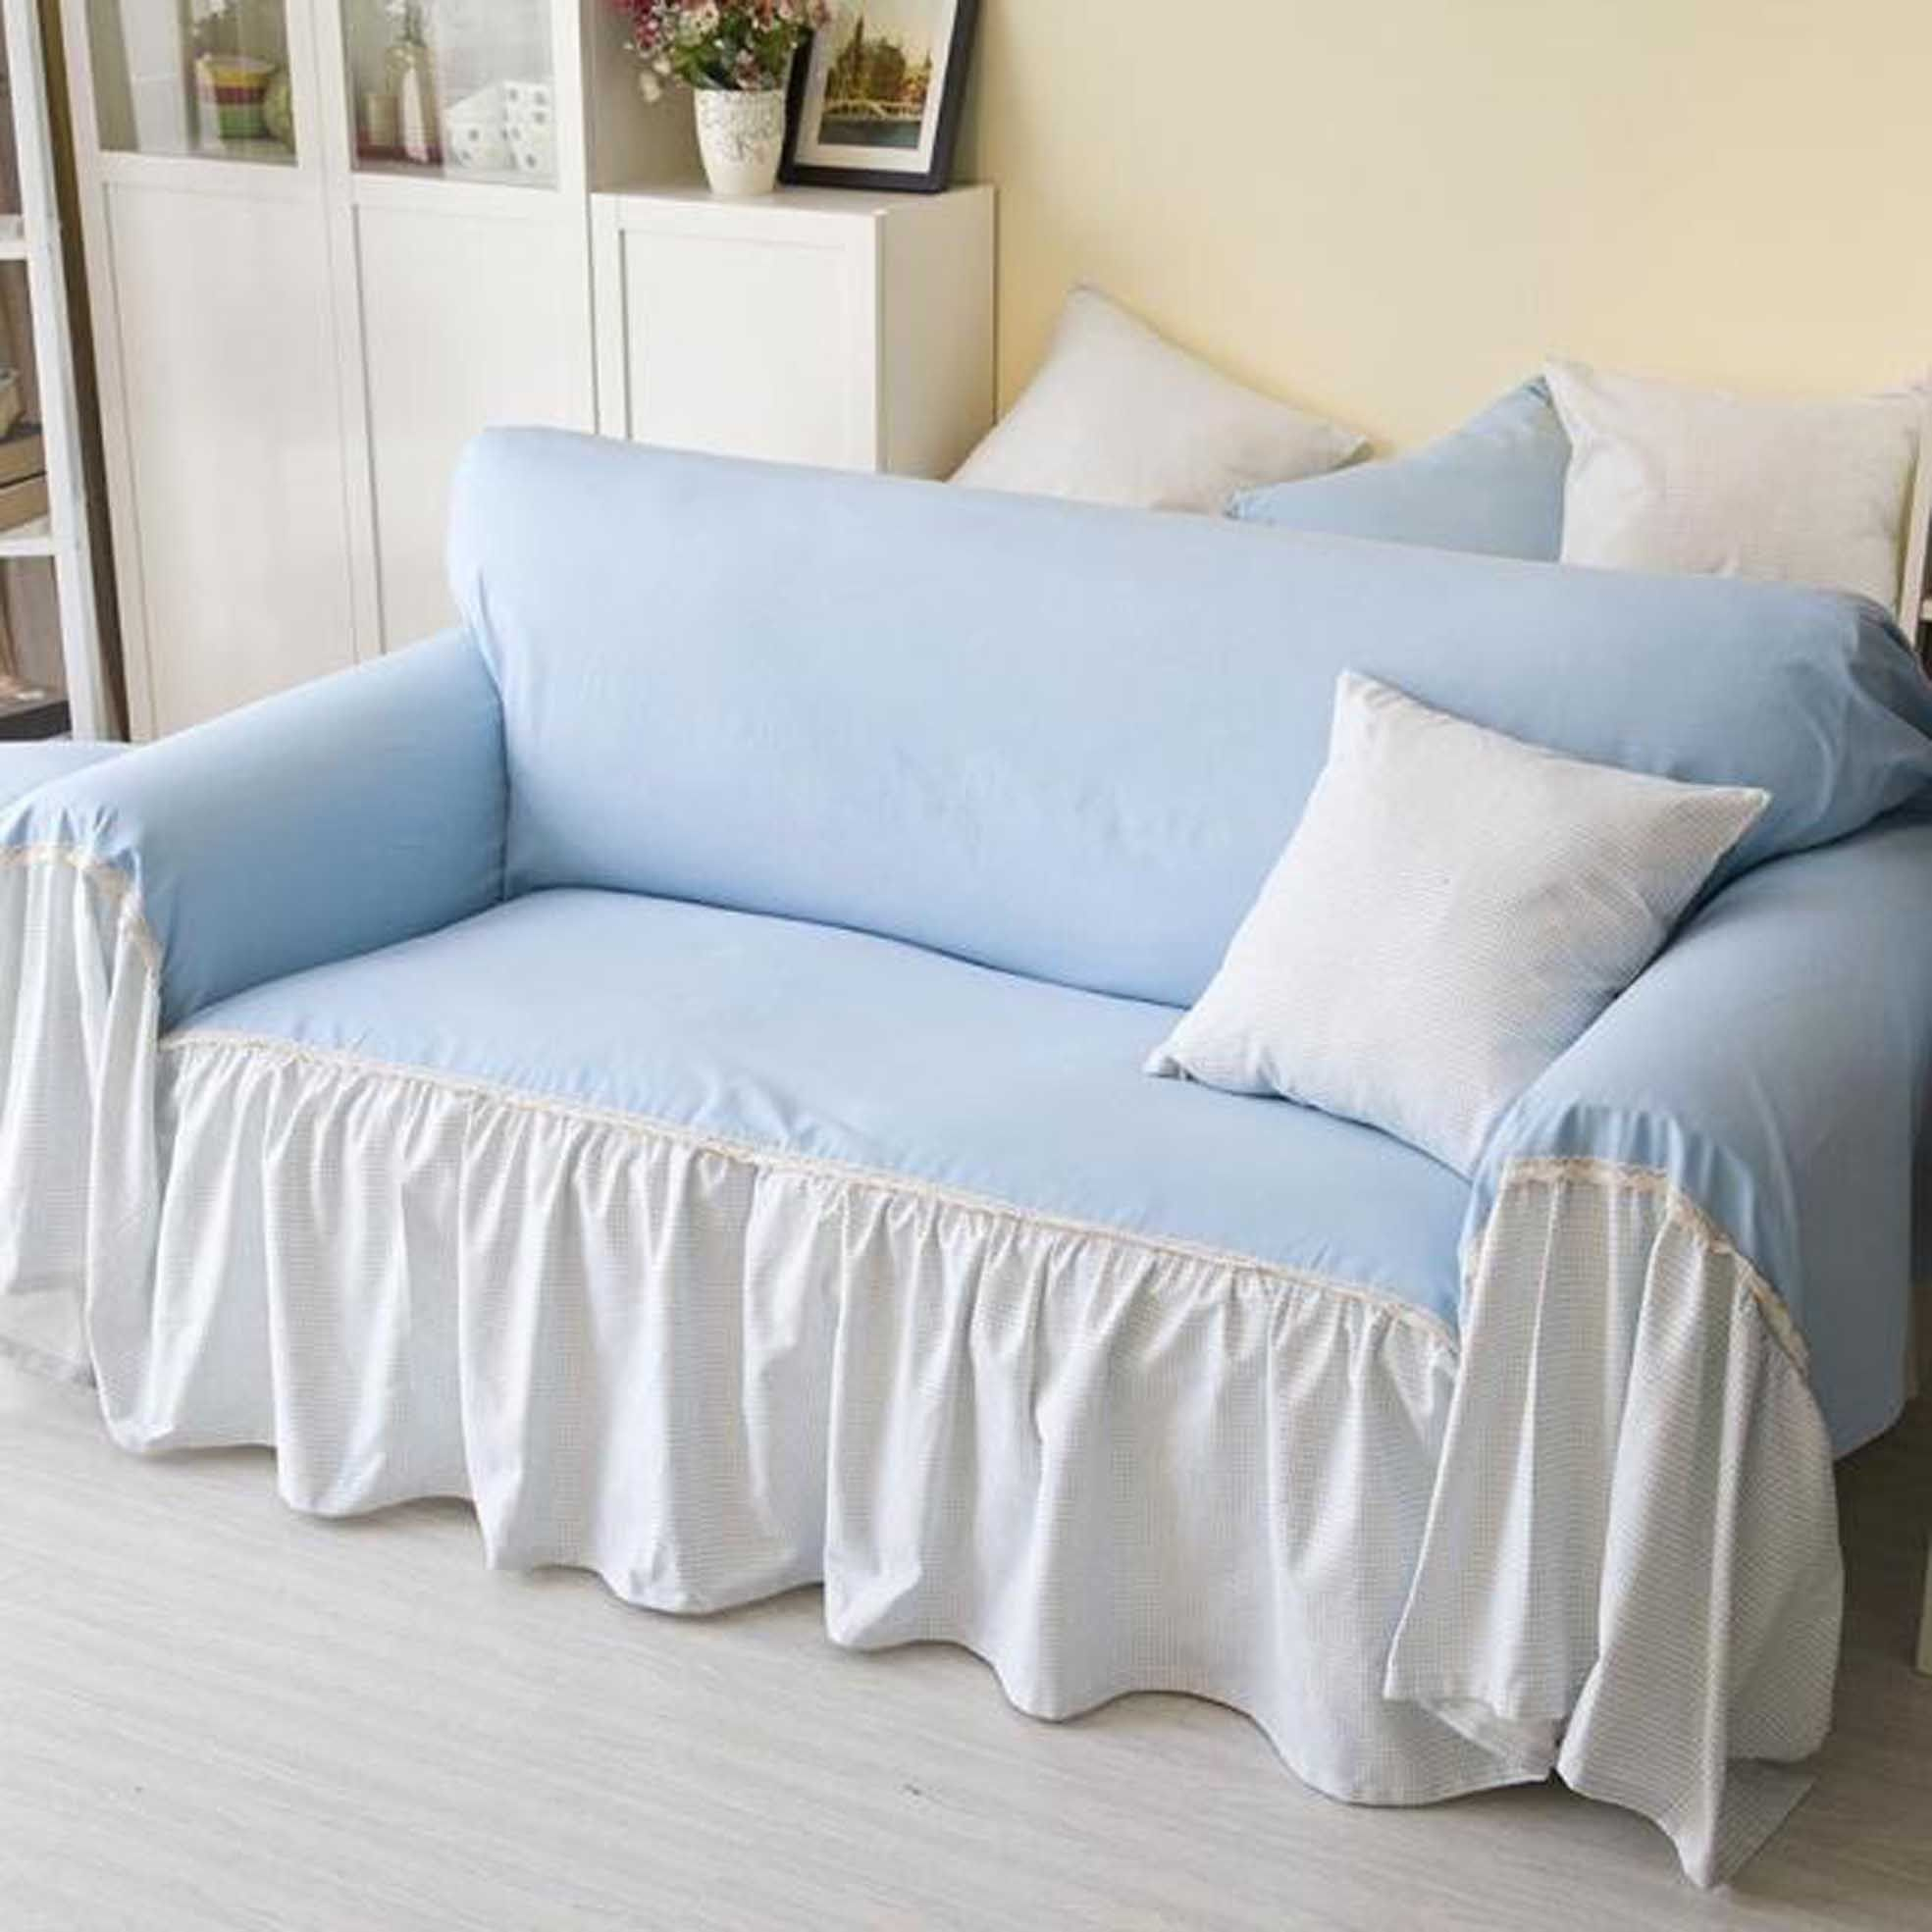 Nice Slipcover For Sofa Unique Slipcover For Sofa 45 With